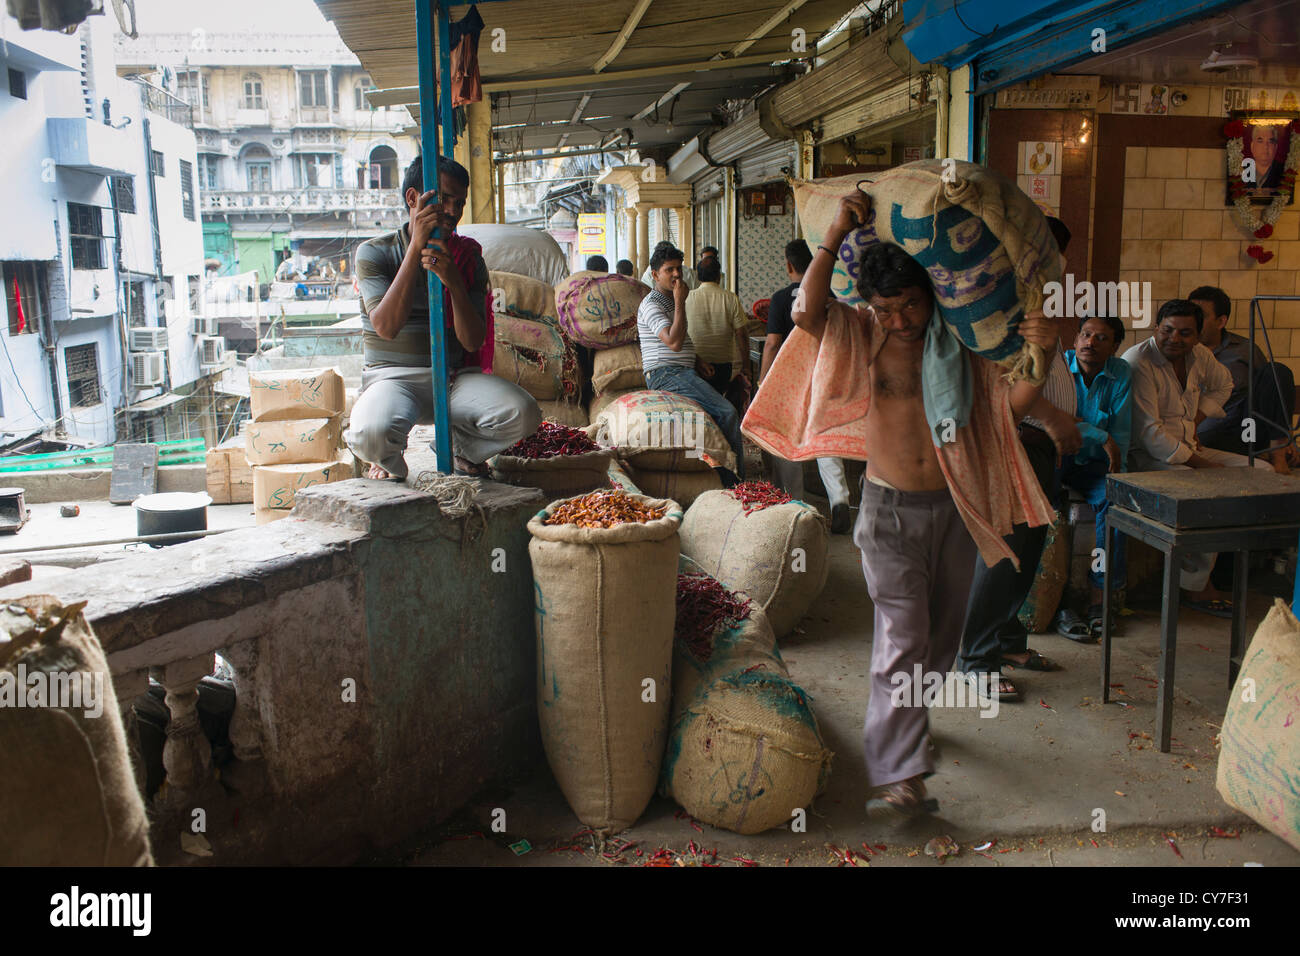 Porter carrying a large burlap sack on a verandah above an alley off Khari Baoli Road (Spice Market Bazaar off Chandni - Stock Image